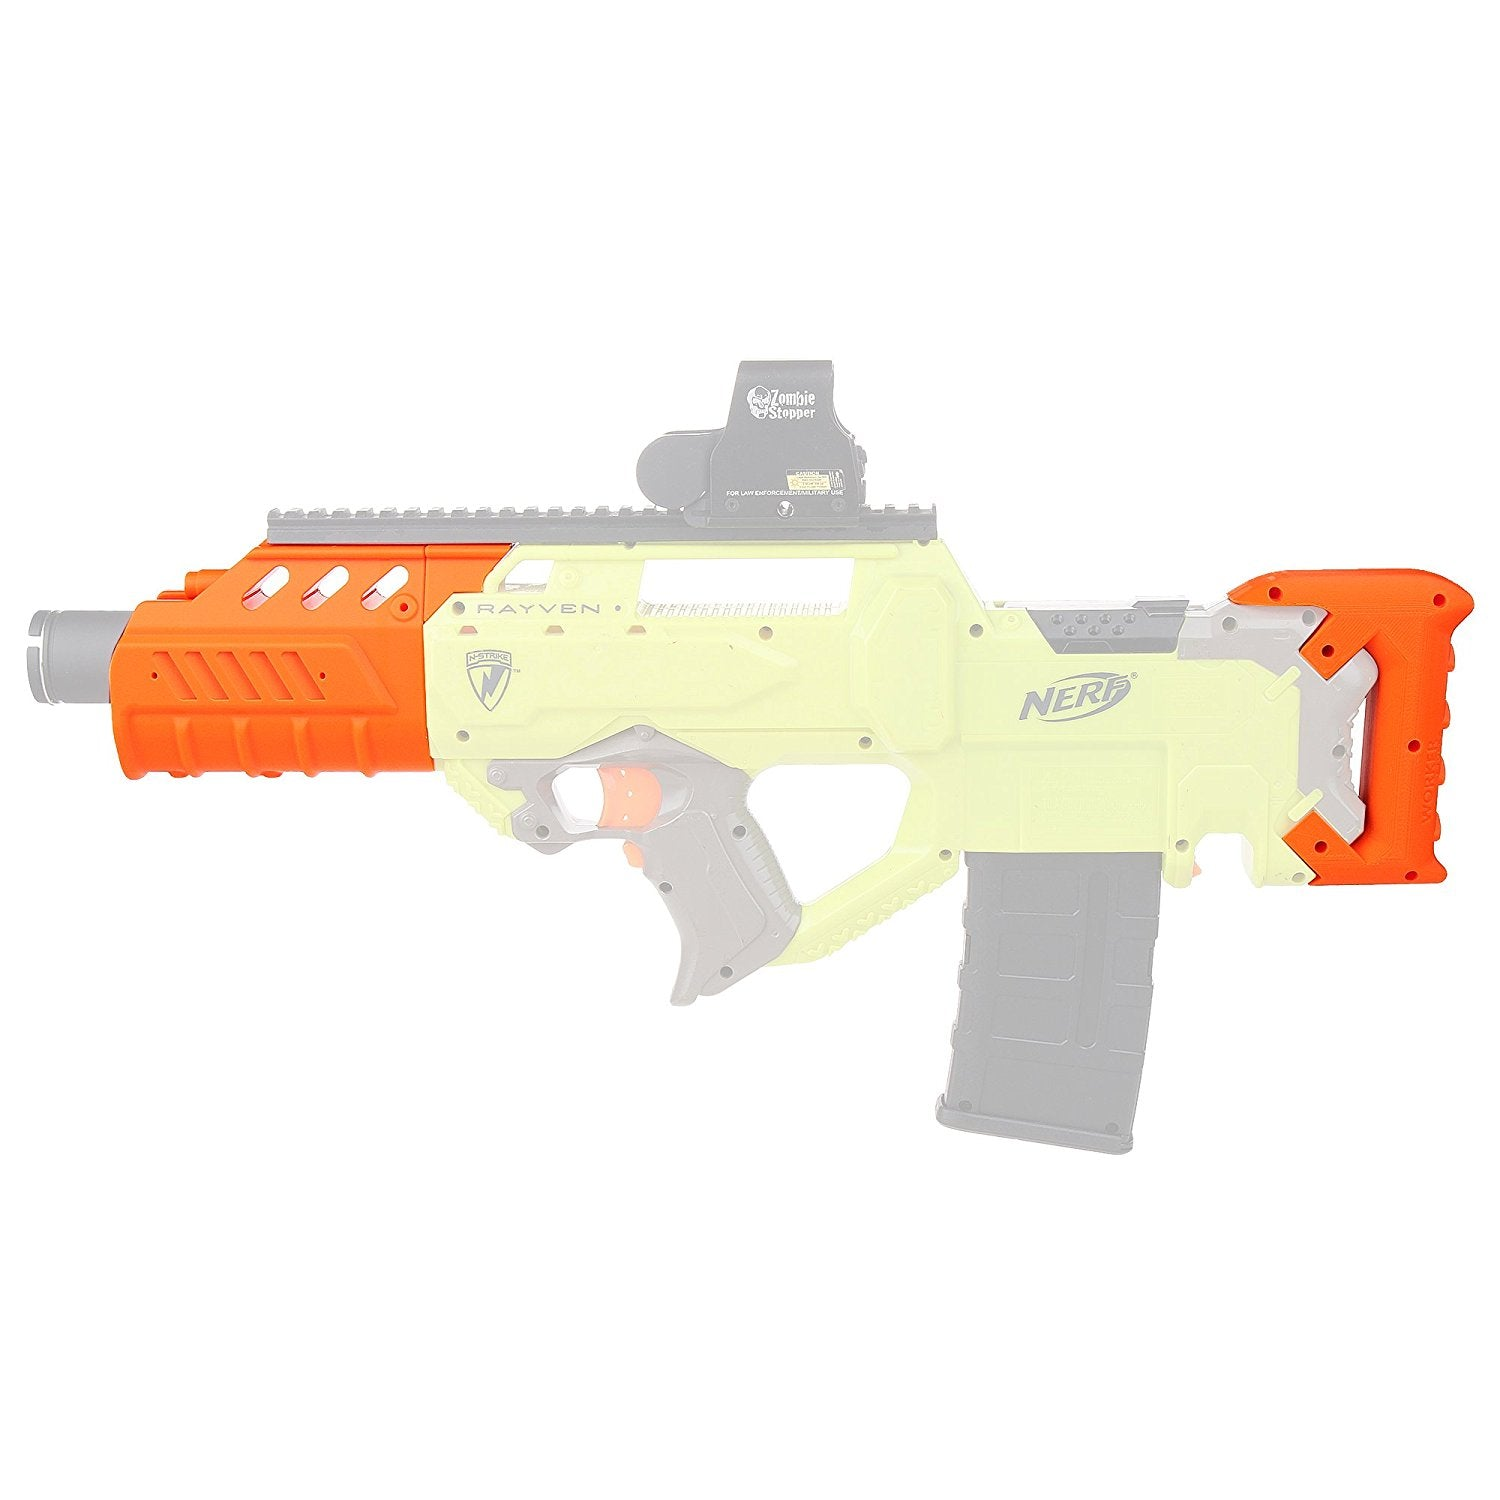 JGCWorker f10555 No.200 3D Printing Modularized Kit for Nerf N-Strike Rayven CS-18 Blaster Color Orange - Nerf Mod Kits -Worker Mod Kits